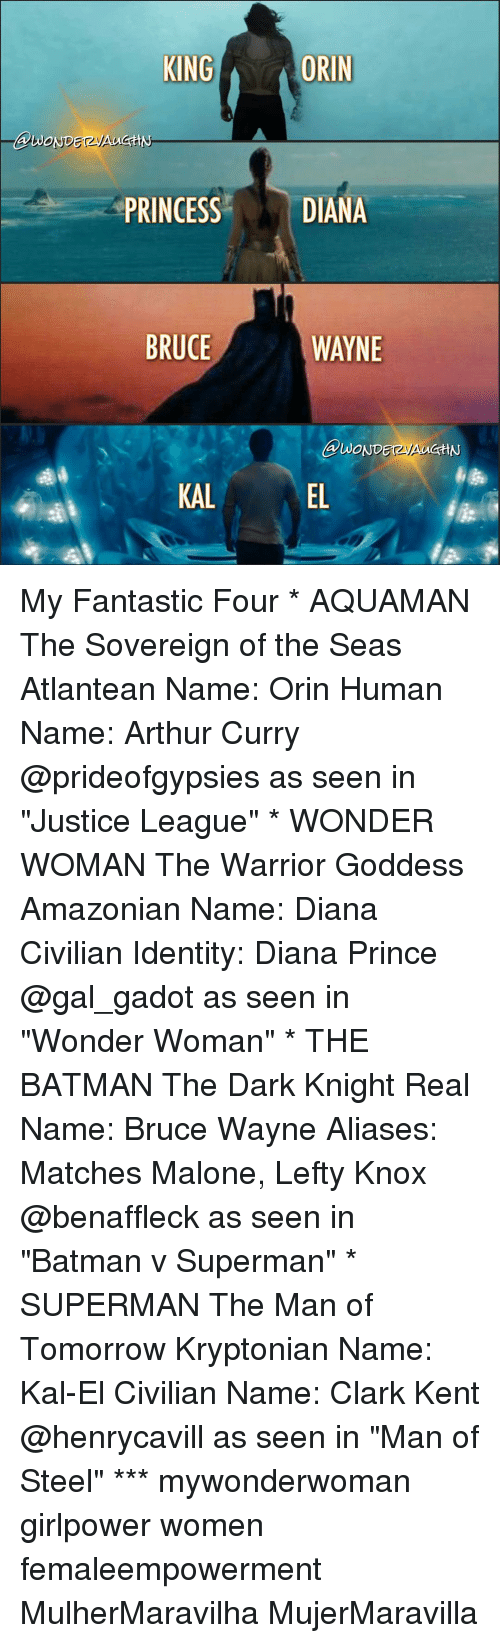 "Arthur, Clark Kent, and Memes: KING  ORIN  DIANA  PRINCESS  BRUCE  WAYNE  KAL My Fantastic Four * AQUAMAN The Sovereign of the Seas Atlantean Name: Orin Human Name: Arthur Curry @prideofgypsies as seen in ""Justice League"" * WONDER WOMAN The Warrior Goddess Amazonian Name: Diana Civilian Identity: Diana Prince @gal_gadot as seen in ""Wonder Woman"" * THE BATMAN The Dark Knight Real Name: Bruce Wayne Aliases: Matches Malone, Lefty Knox @benaffleck as seen in ""Batman v Superman"" * SUPERMAN The Man of Tomorrow Kryptonian Name: Kal-El Civilian Name: Clark Kent @henrycavill as seen in ""Man of Steel"" *** mywonderwoman girlpower women femaleempowerment MulherMaravilha MujerMaravilla"